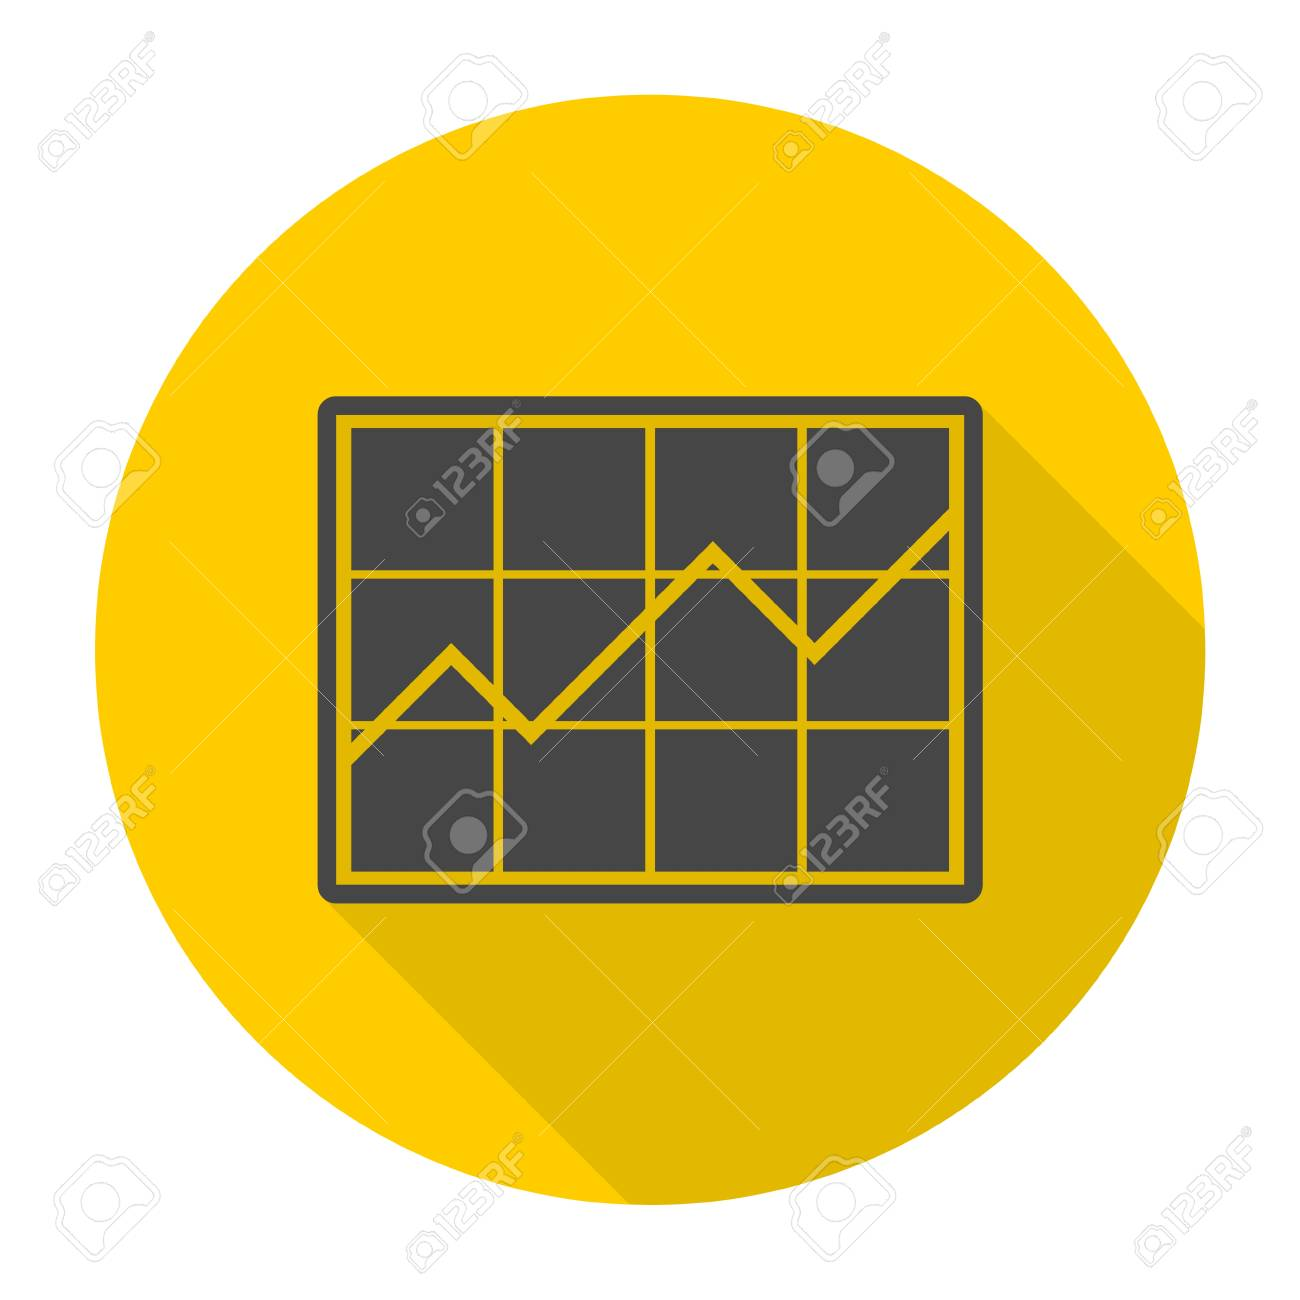 hight resolution of chart icon sign icon with long shadow stock vector 53961631